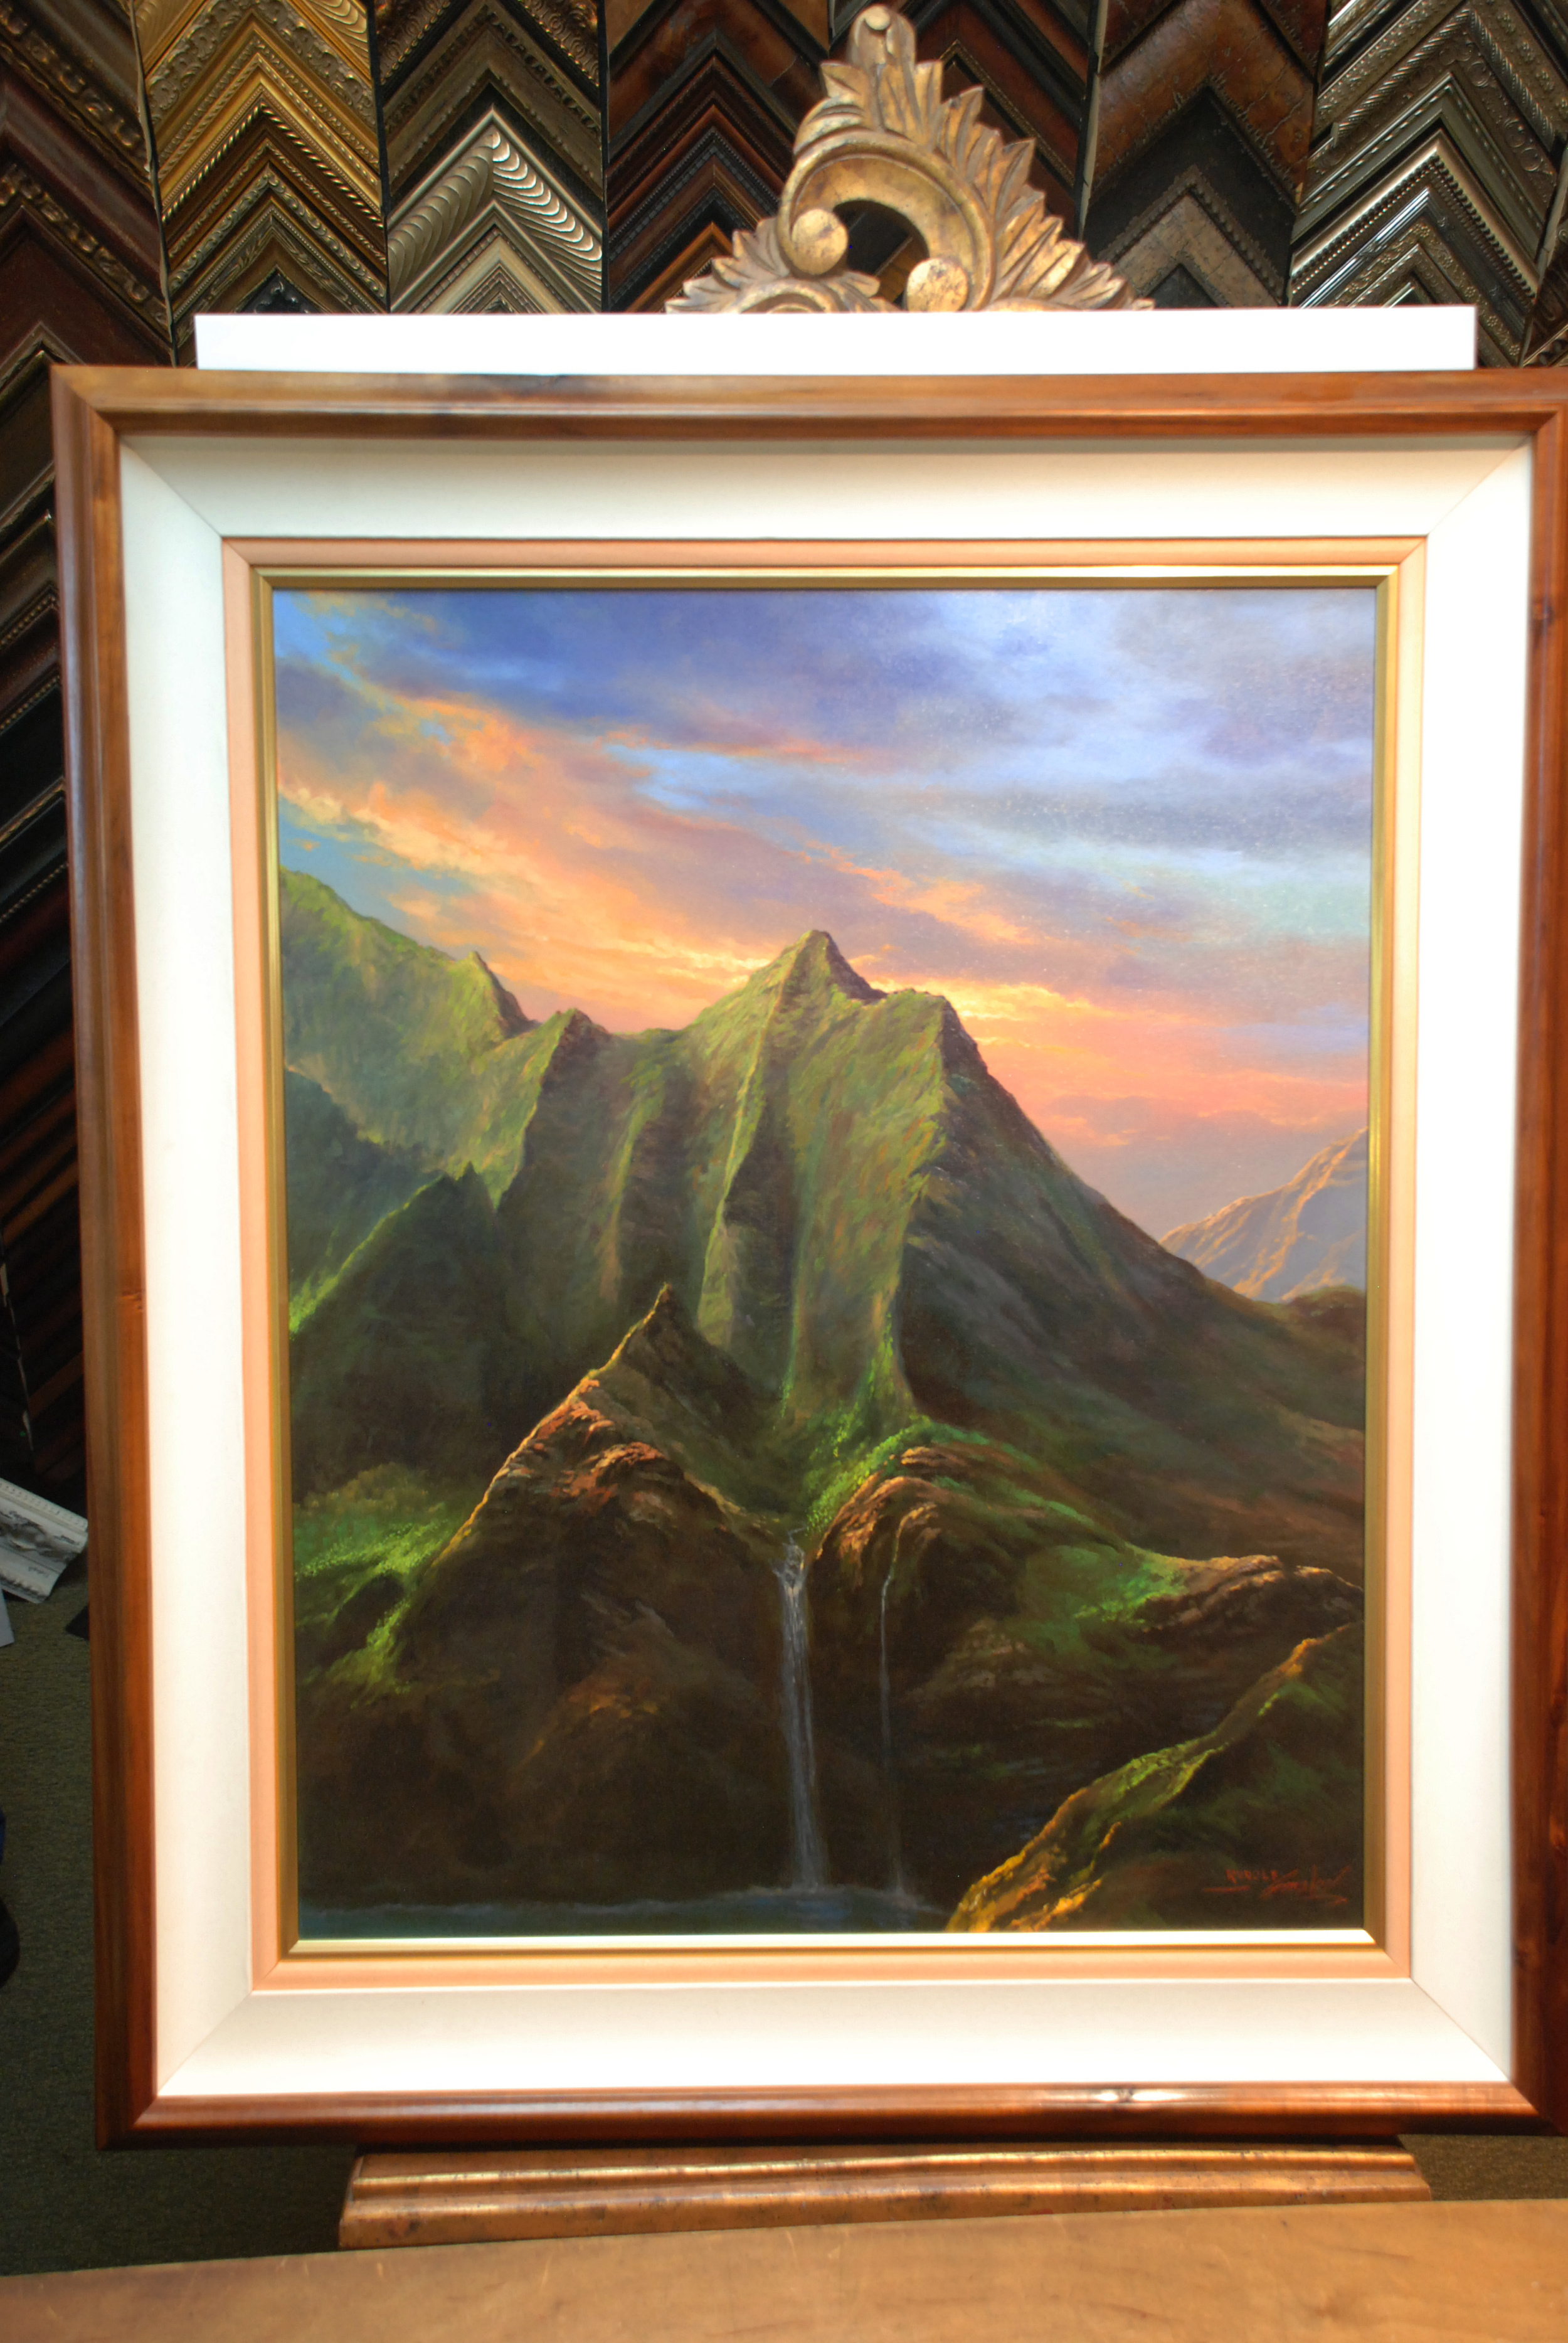 PHOTO CREDIT: CARTER HOUSE - PAINTING BY Gonzalez - Silent Falls